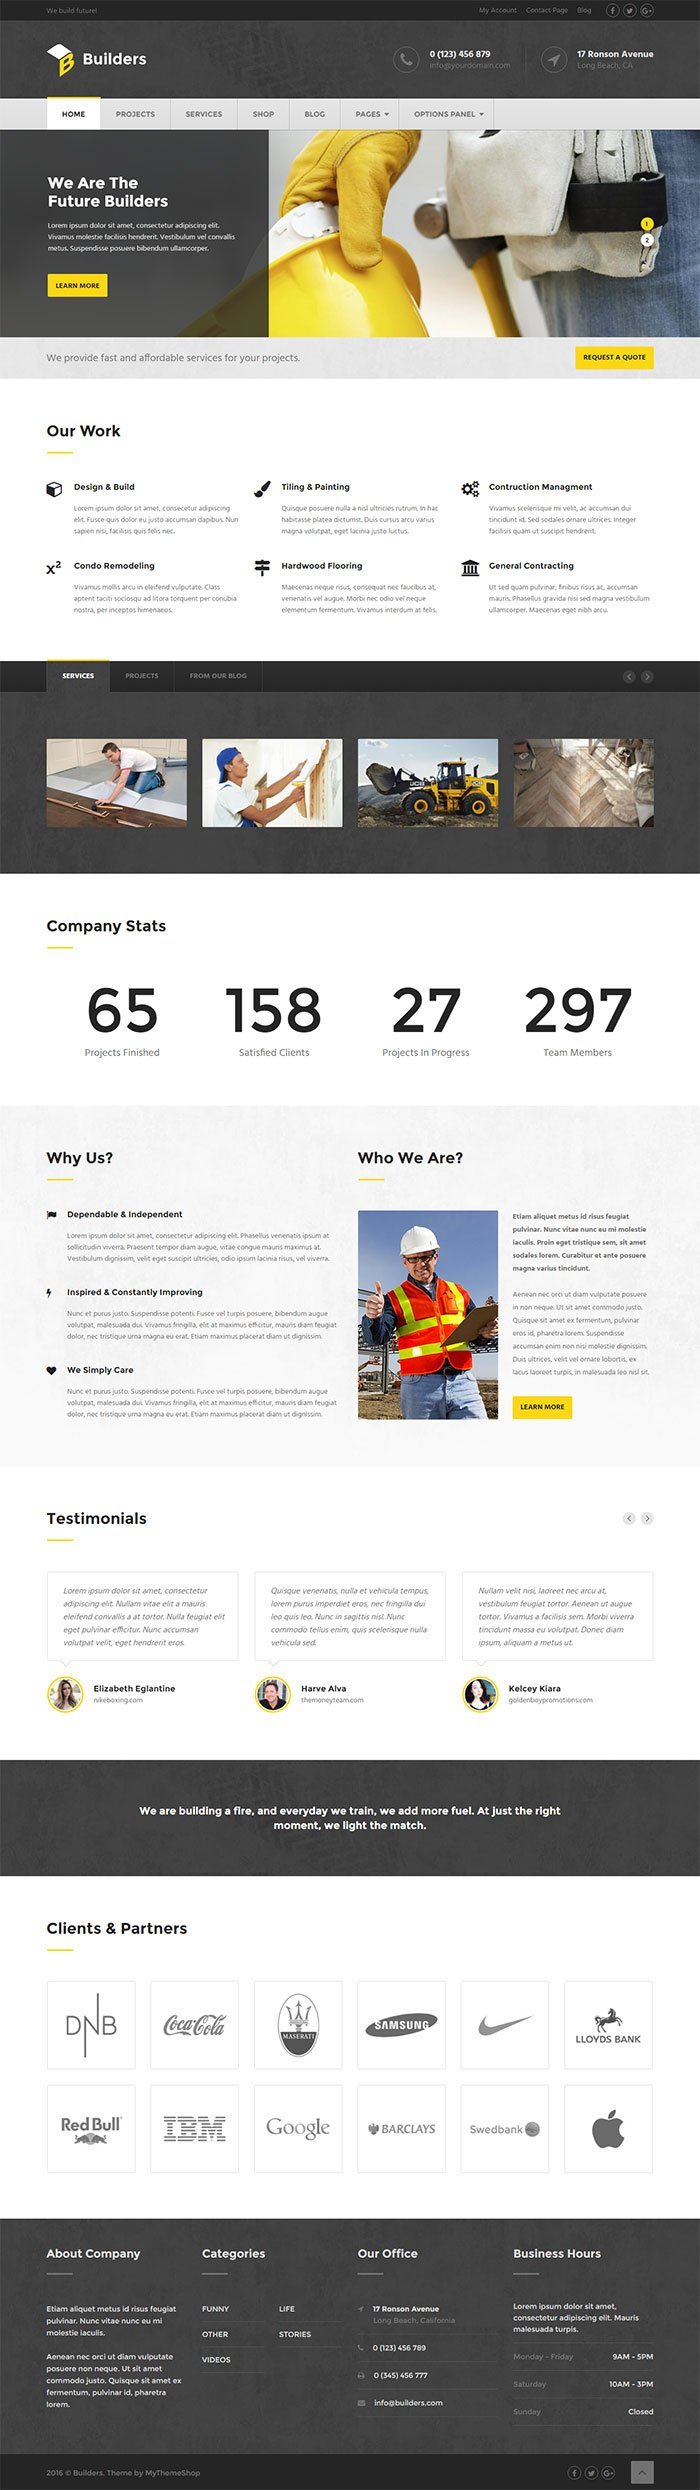 Builders WordPress Theme Mythemeshop